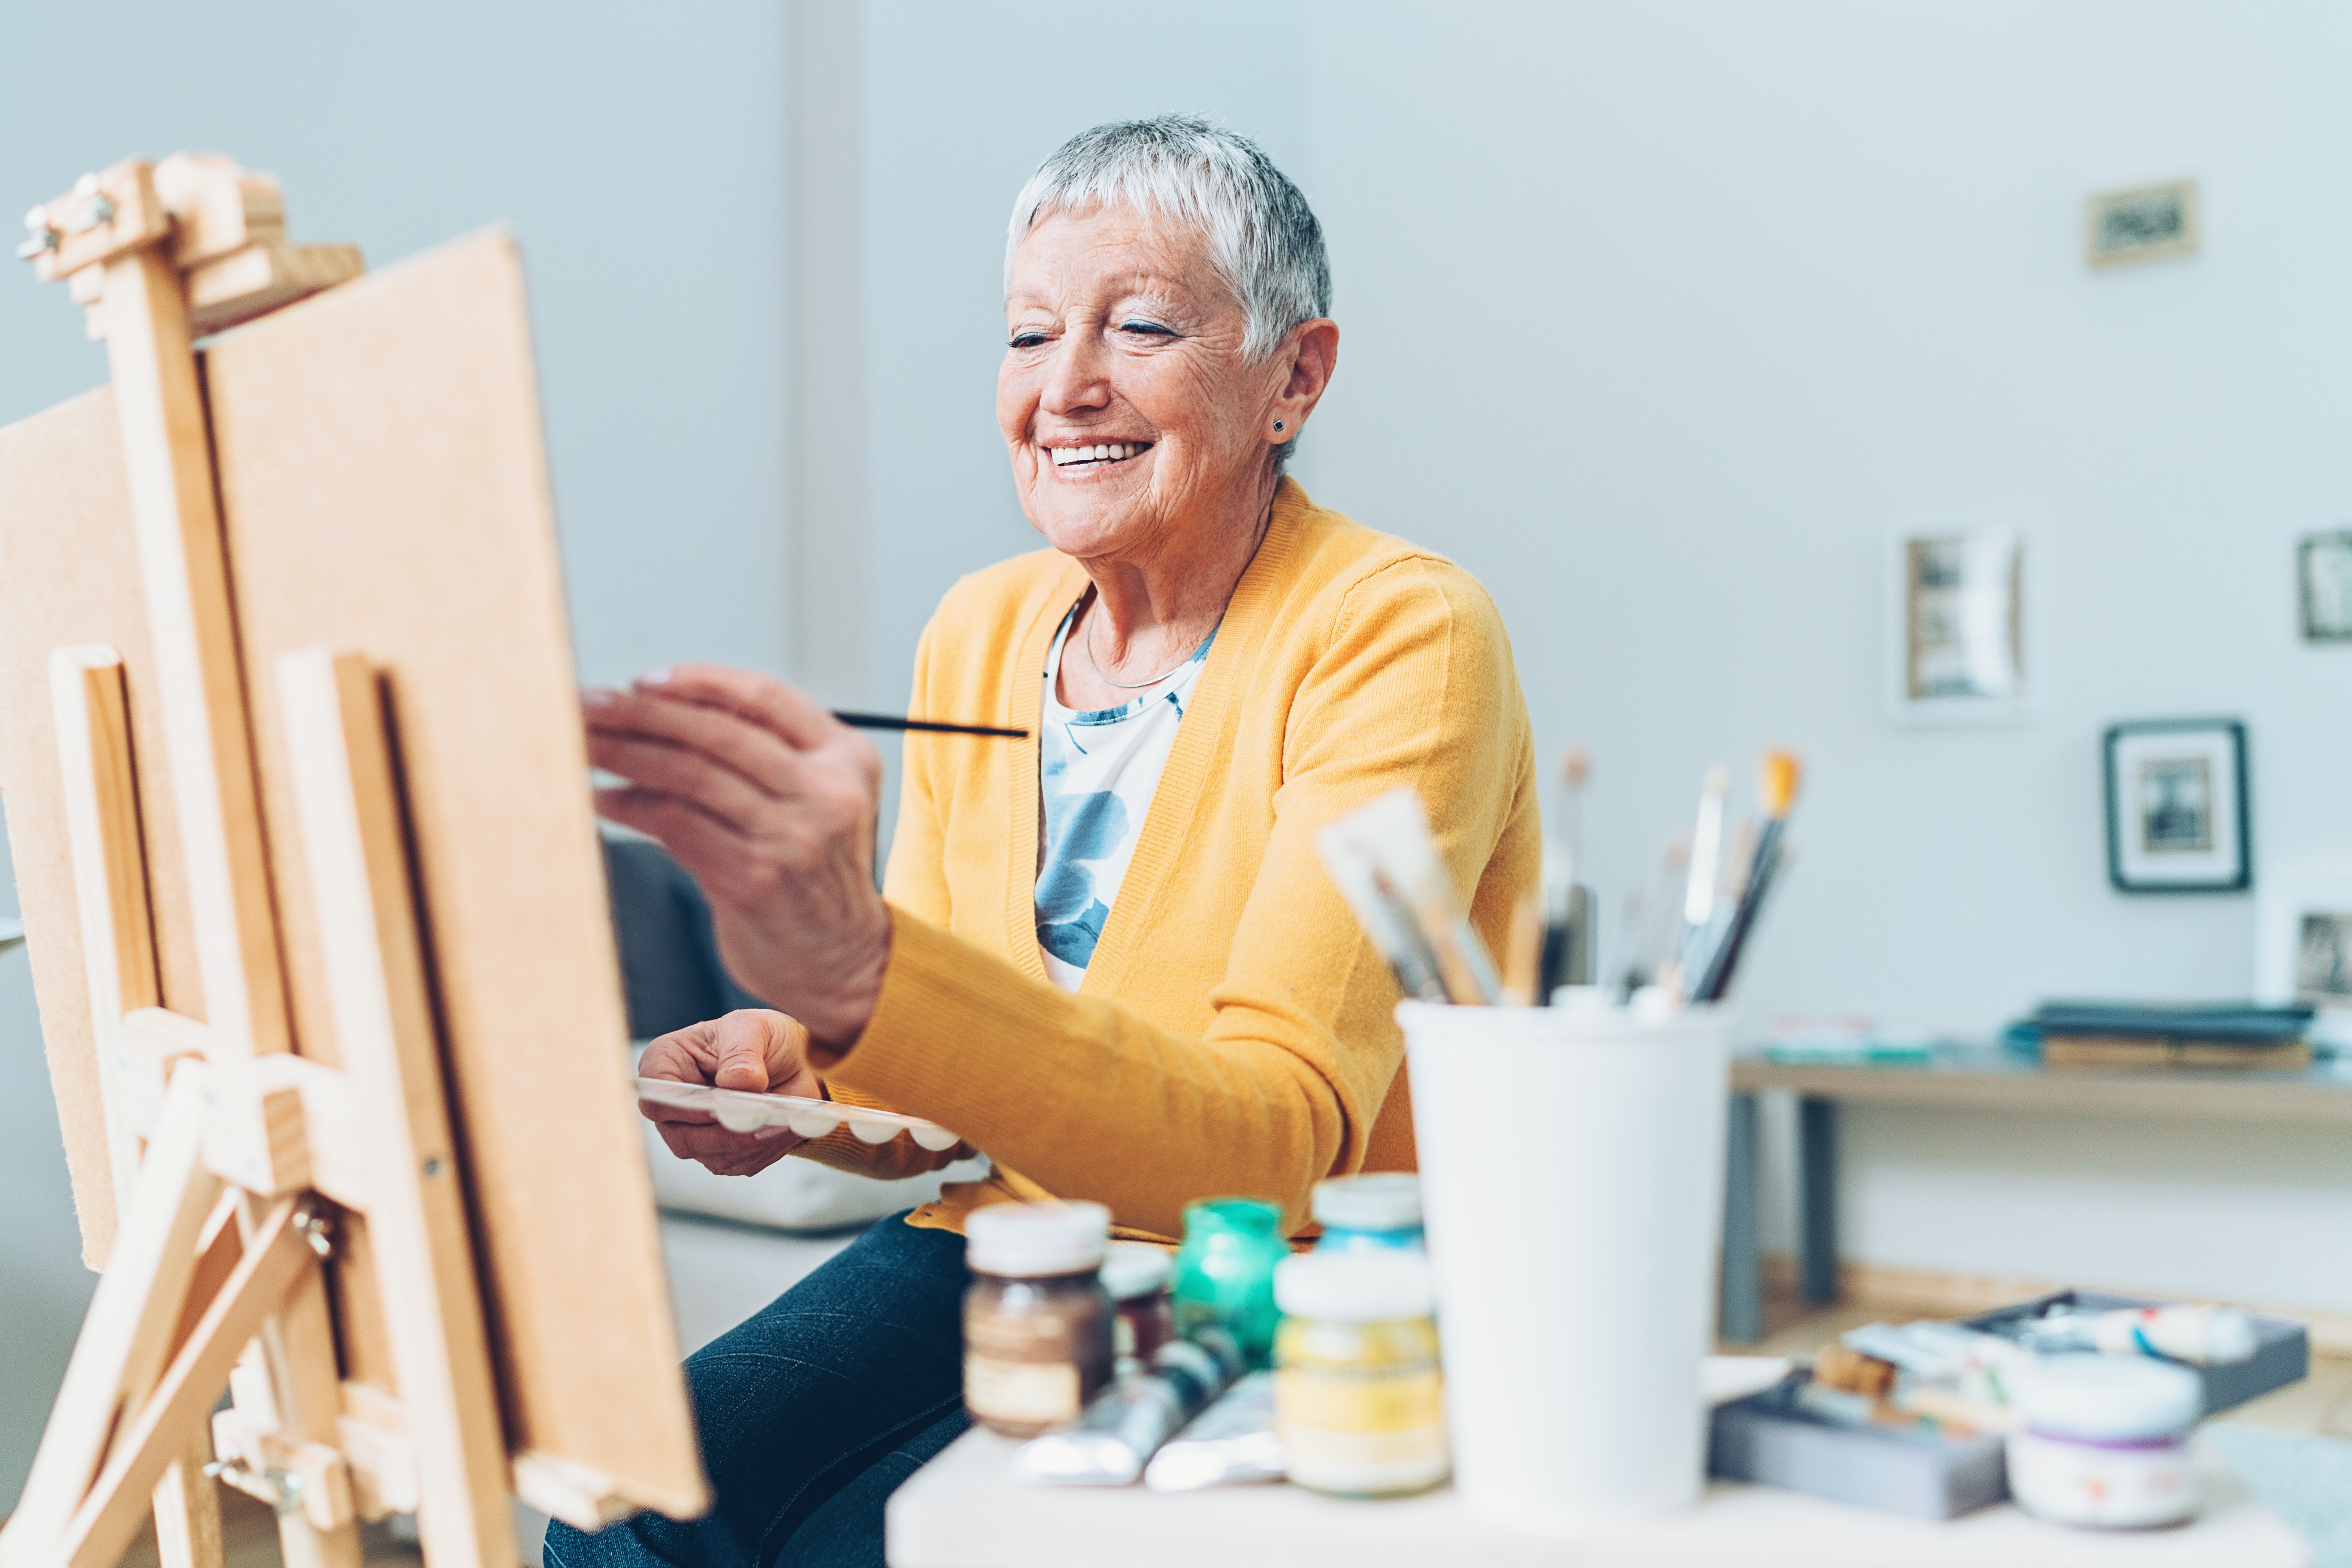 Senior with alzheimer's keeping active and engaged by painting in assisted living